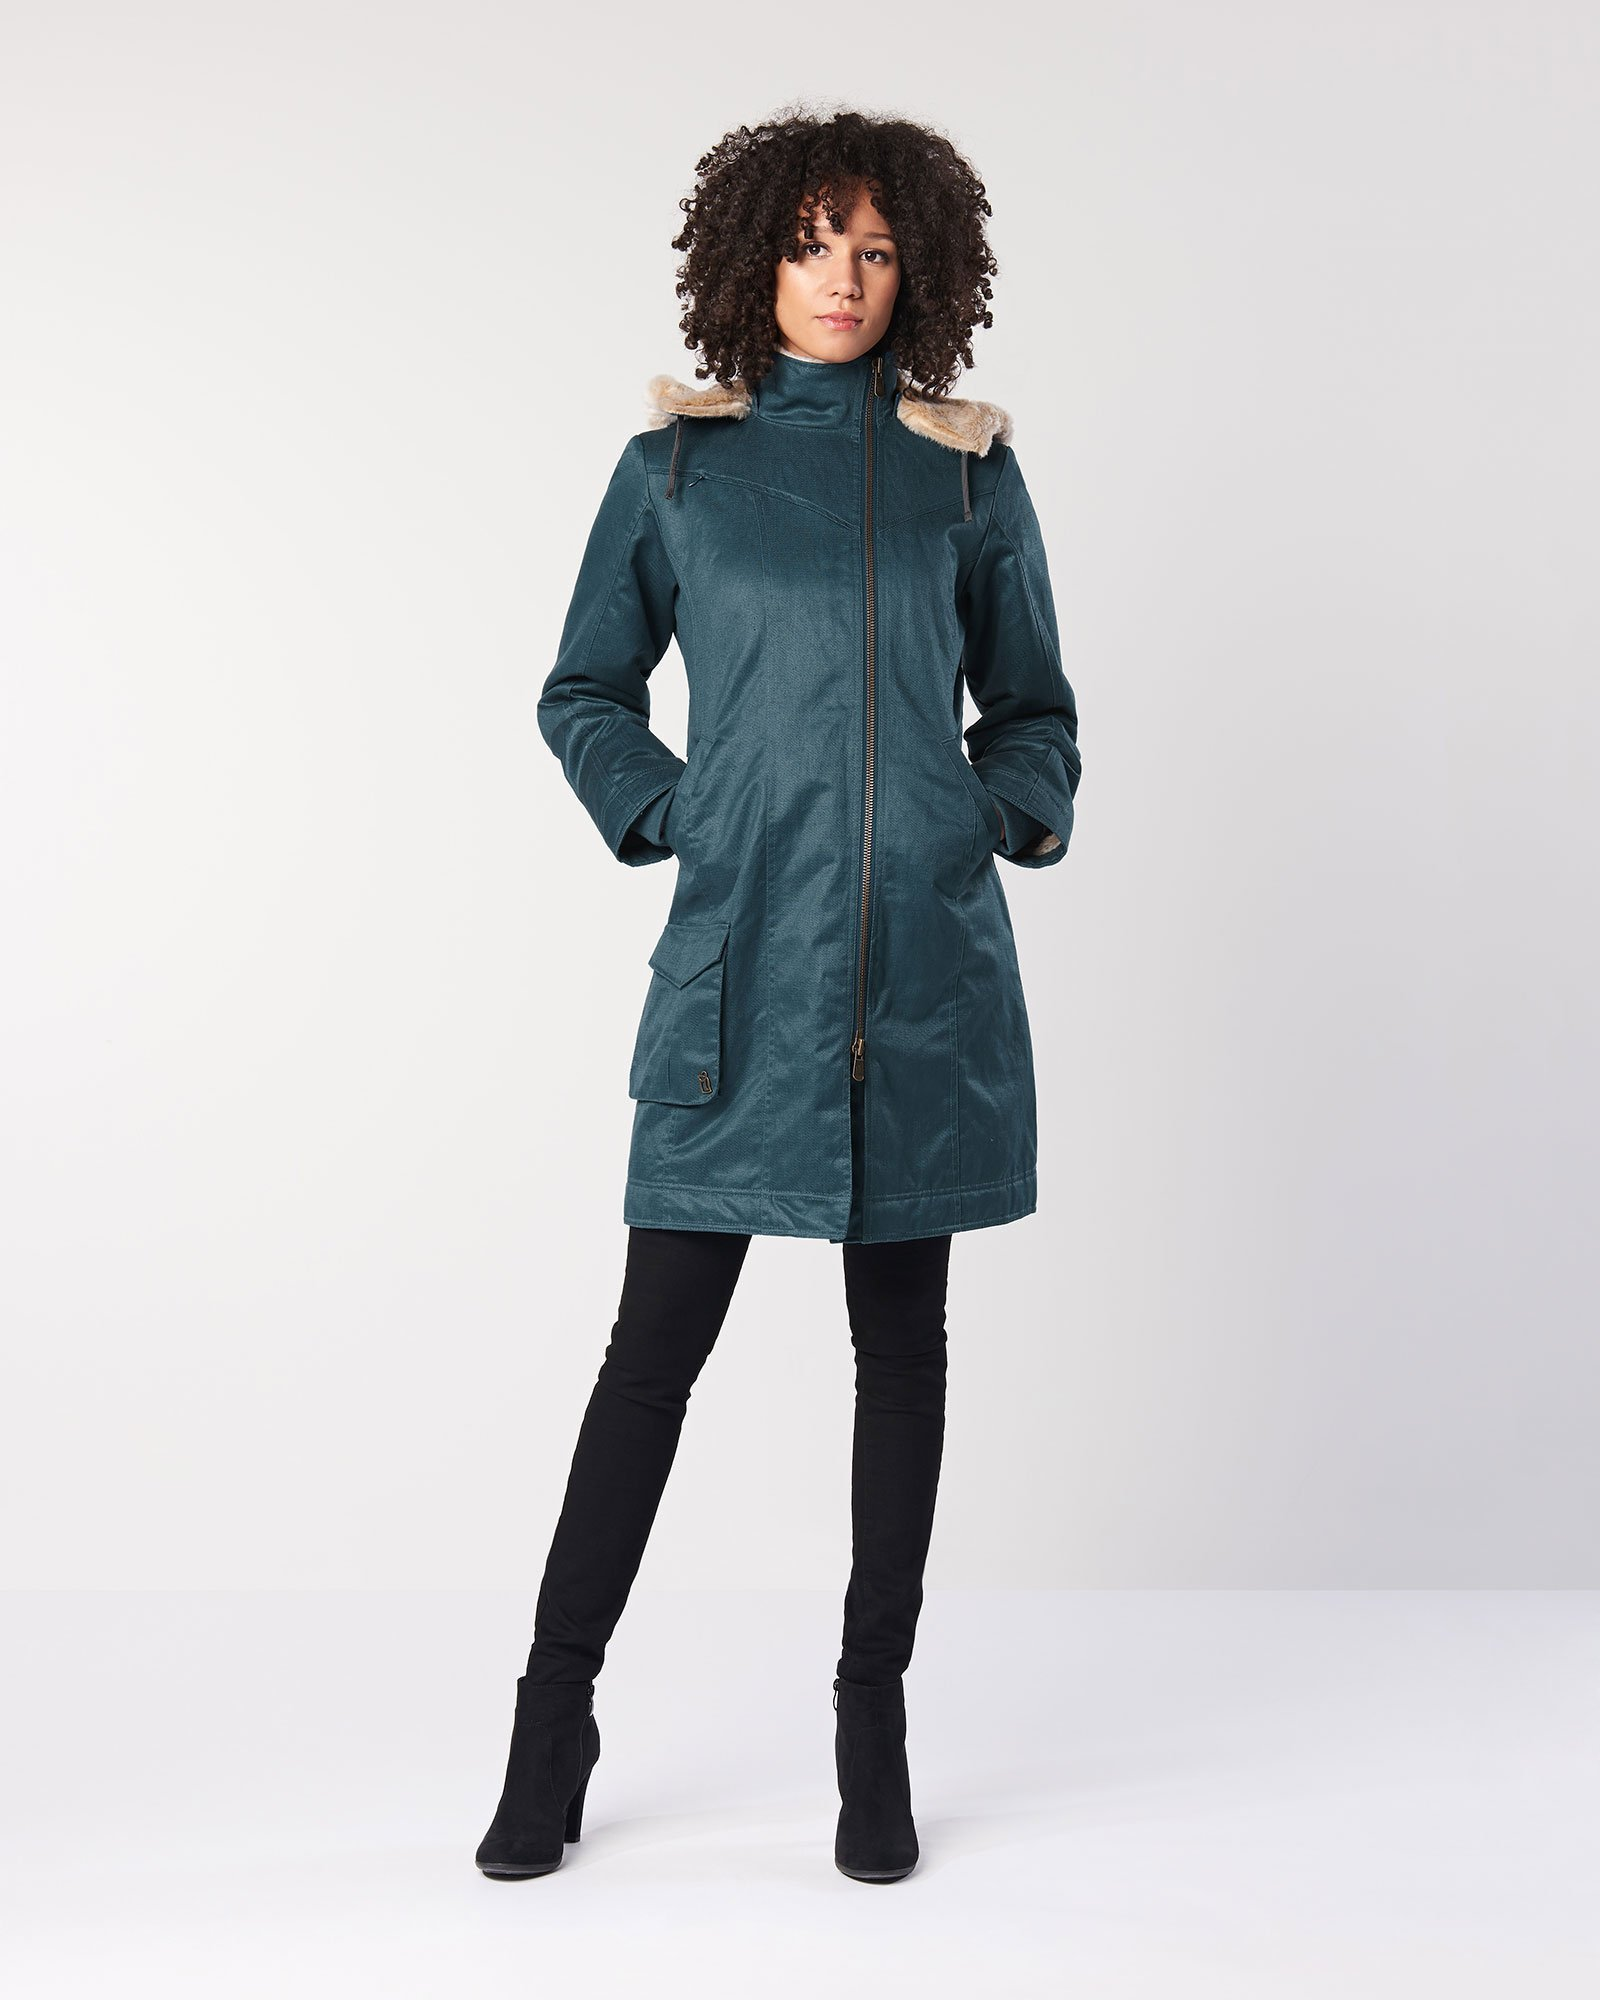 2.Coat - Game changing winter warmth from Hood Lamb.